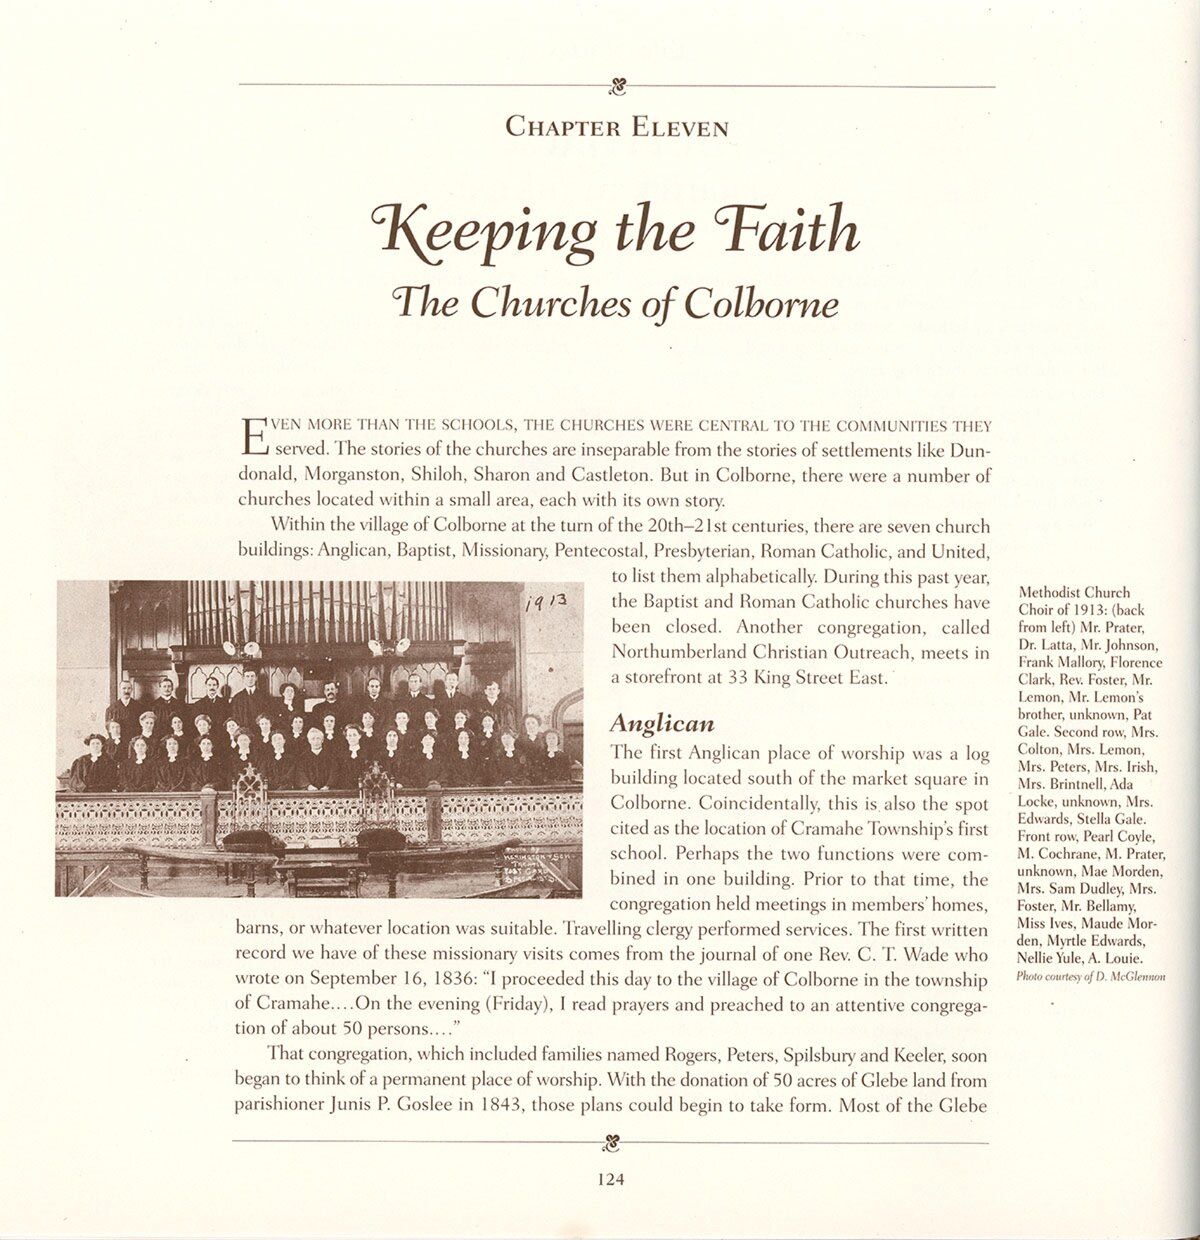 """""""Keeping the Faith: The Churches of Colborne"""" in How Firm a Foundation: A History of the Township of Cramahe and the Village of Colborne, pp.124-132."""